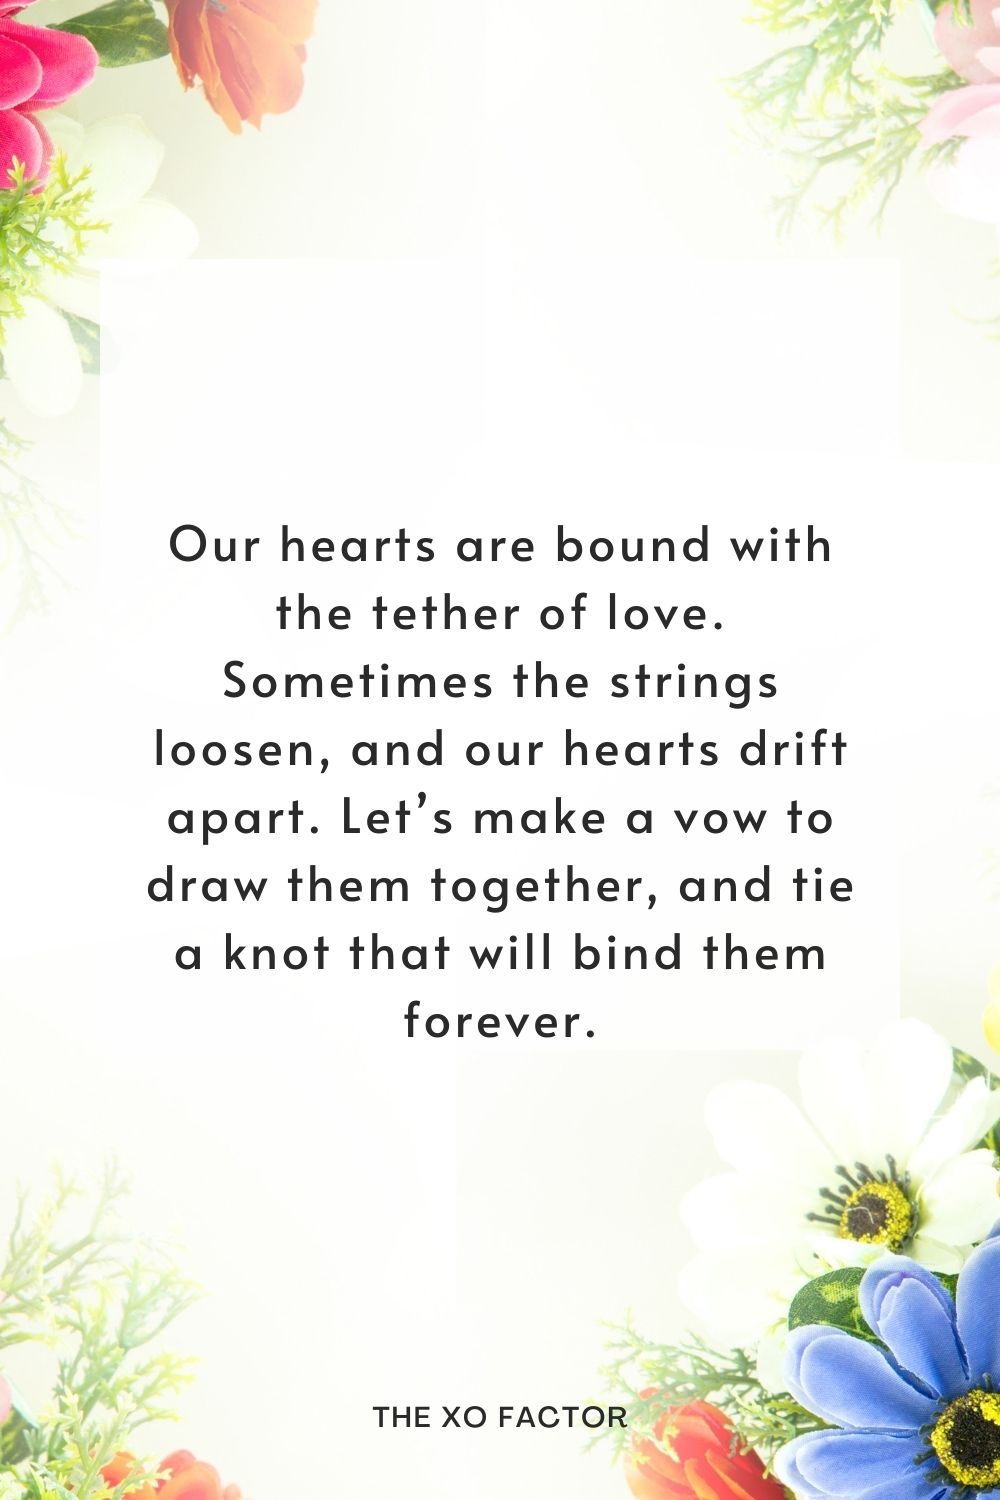 Our hearts are bound with the tether of love. Sometimes the strings loosen, and our hearts drift apart. Let's make a vow to draw them together, and tie a knot that will bind them forever.